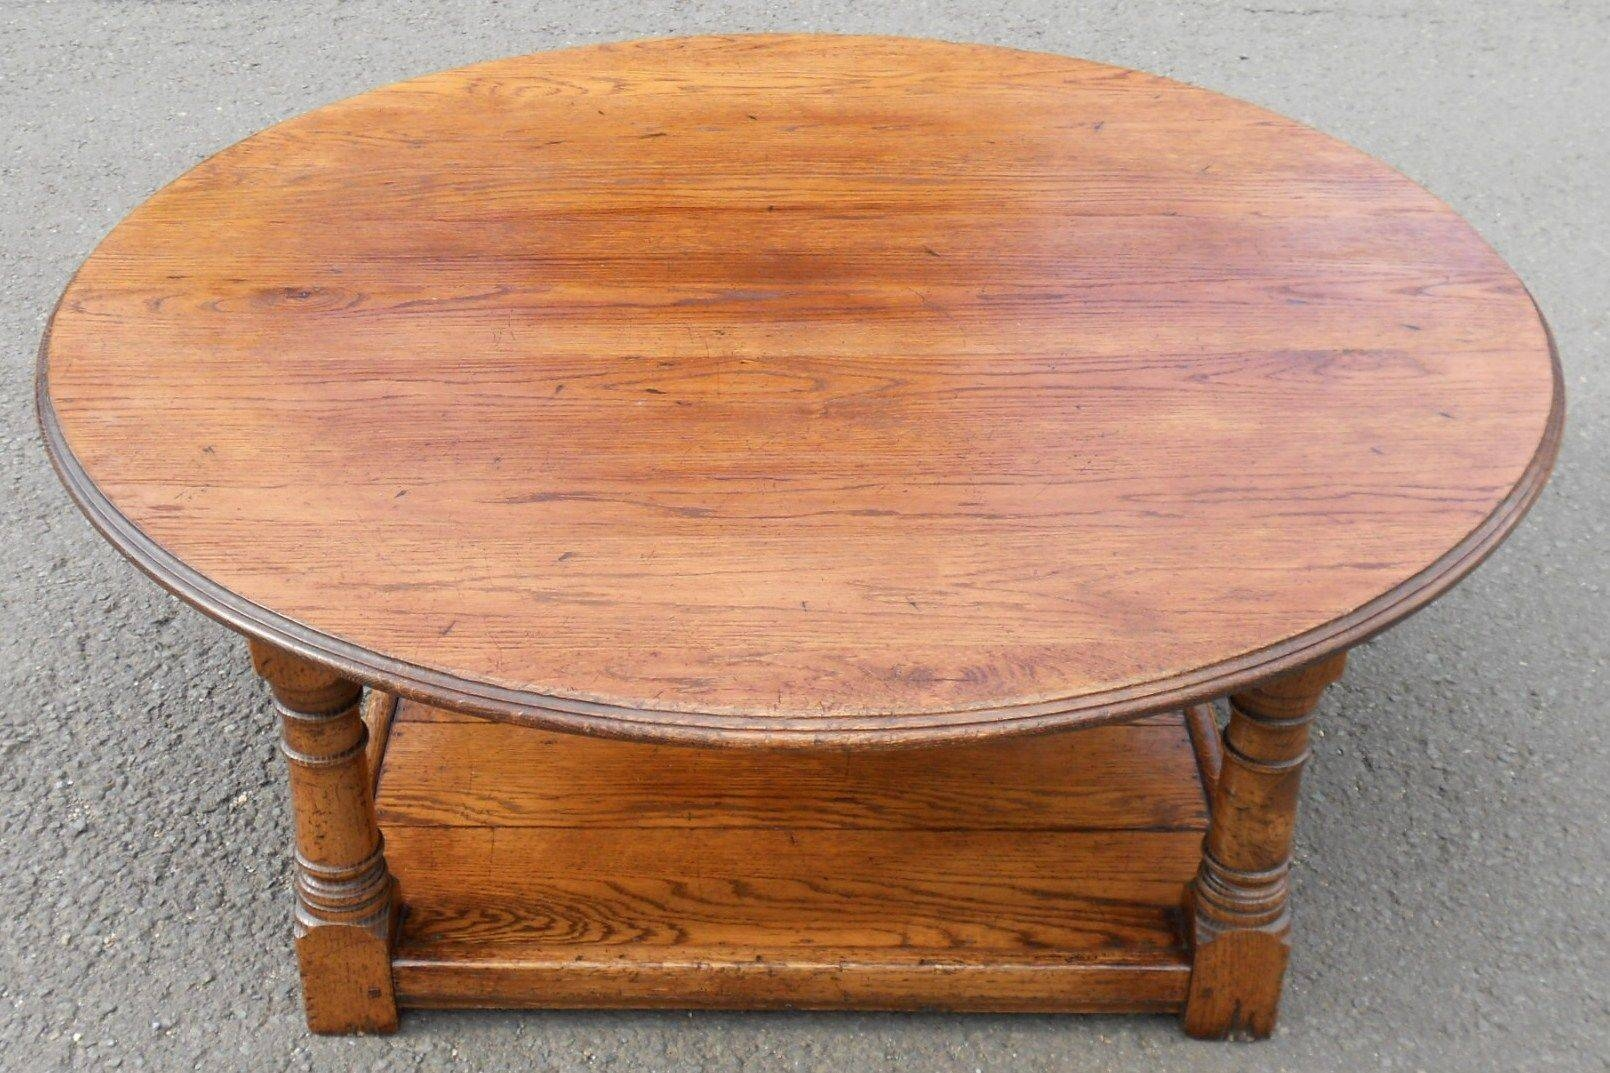 Large Round Coffee Table Wood - Starrkingschool with regard to Oversized Round Coffee Tables (Image 19 of 30)